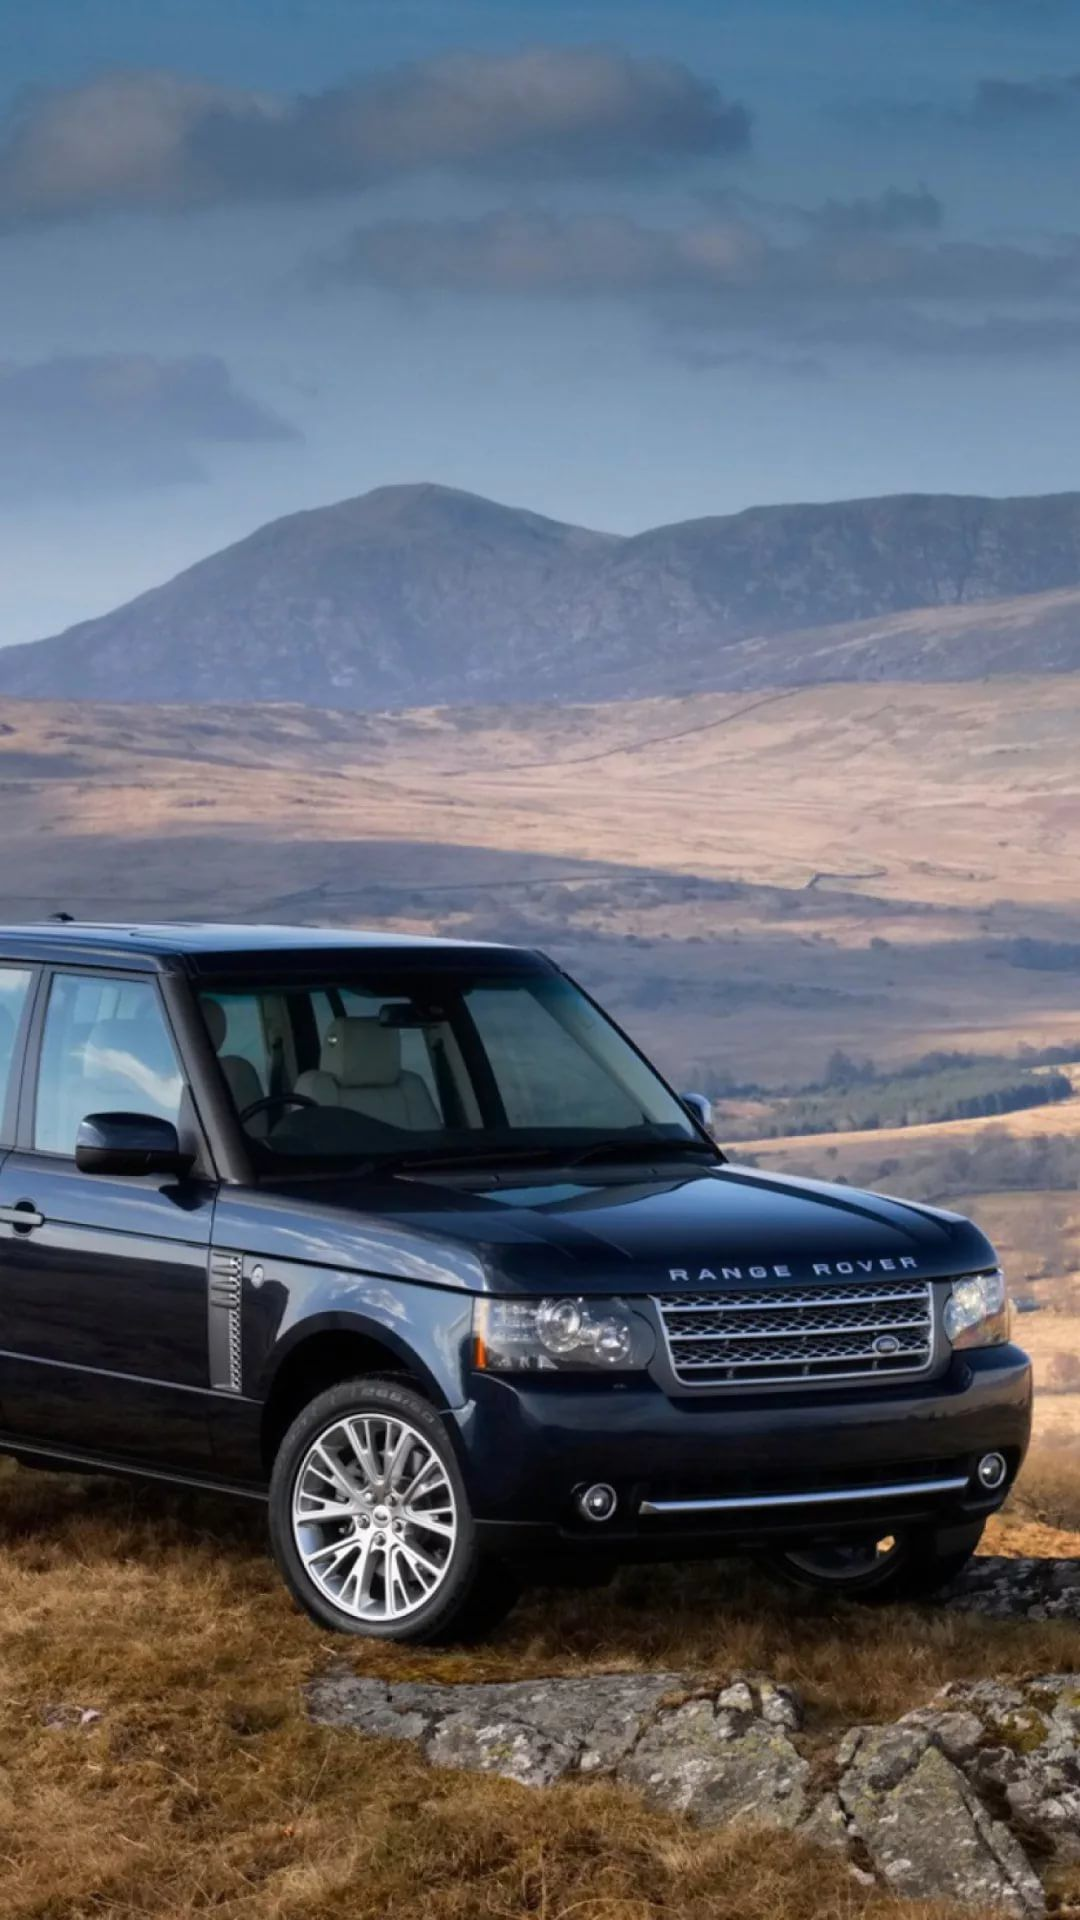 Range Rover cool phone wallpaper